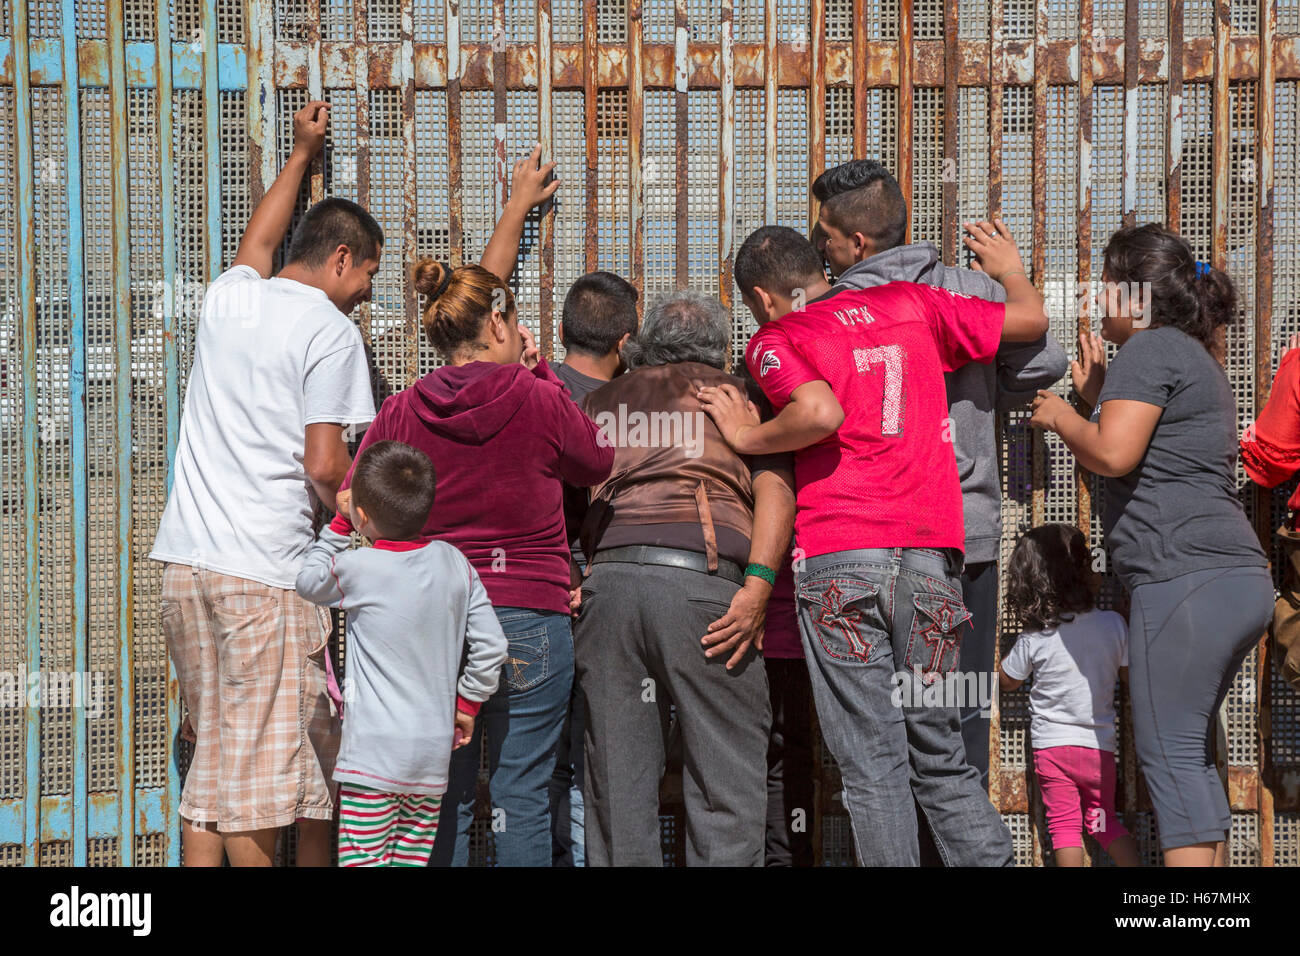 Tijuana, Mexico - Family members separated by deportation visit through the U.S.-Mexico border fence. - Stock Image